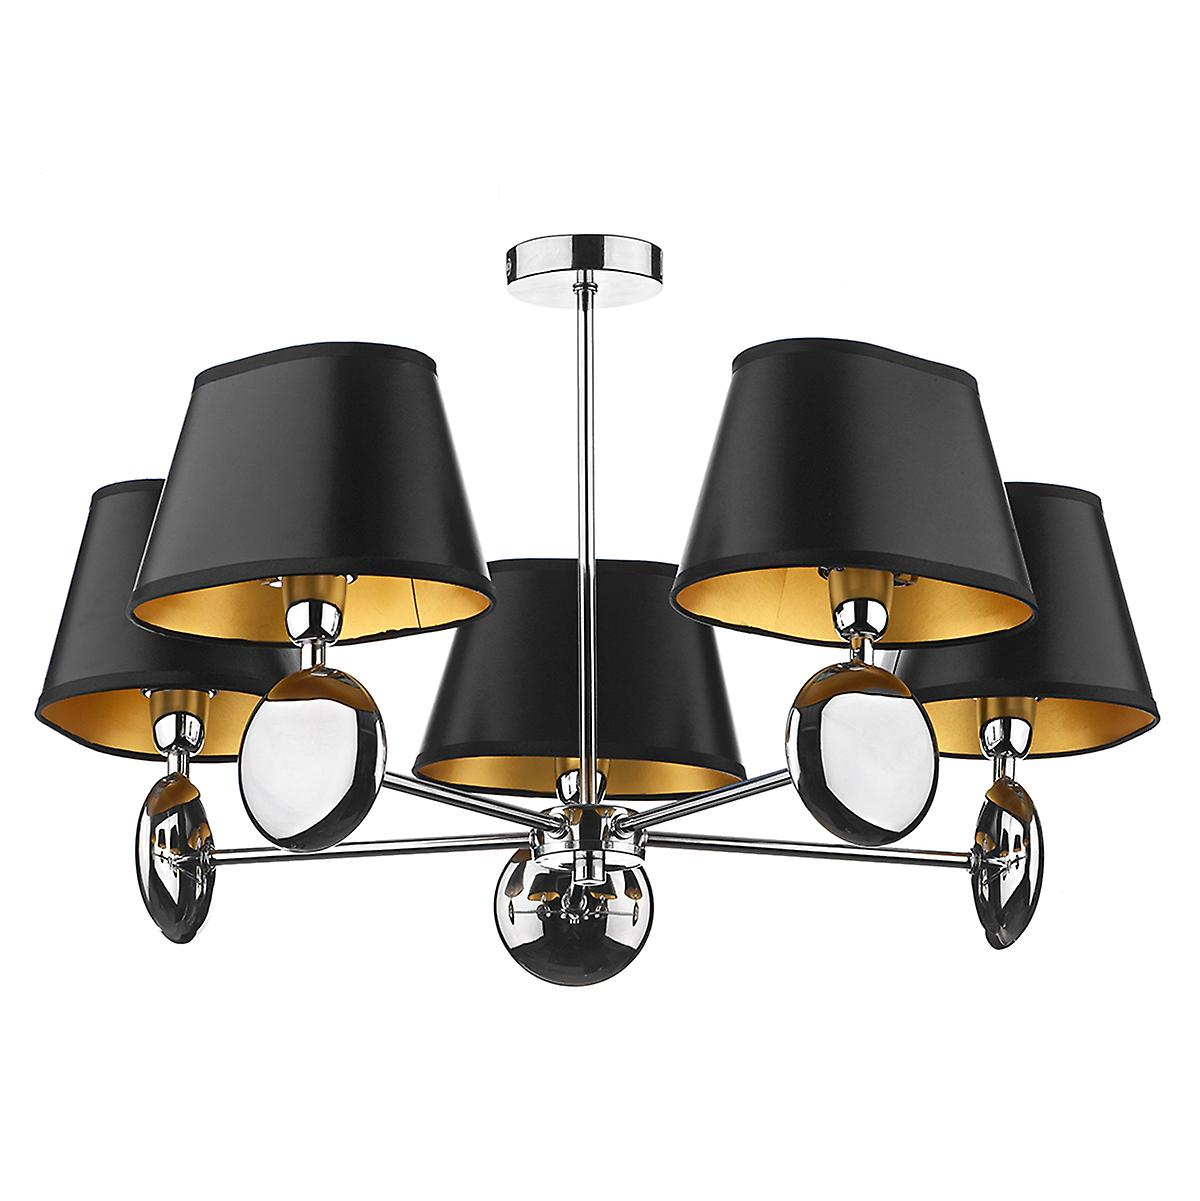 Dar LEX0550 Lexington 5 Arm Dual Mount Ceiling Pendant Double Insulated